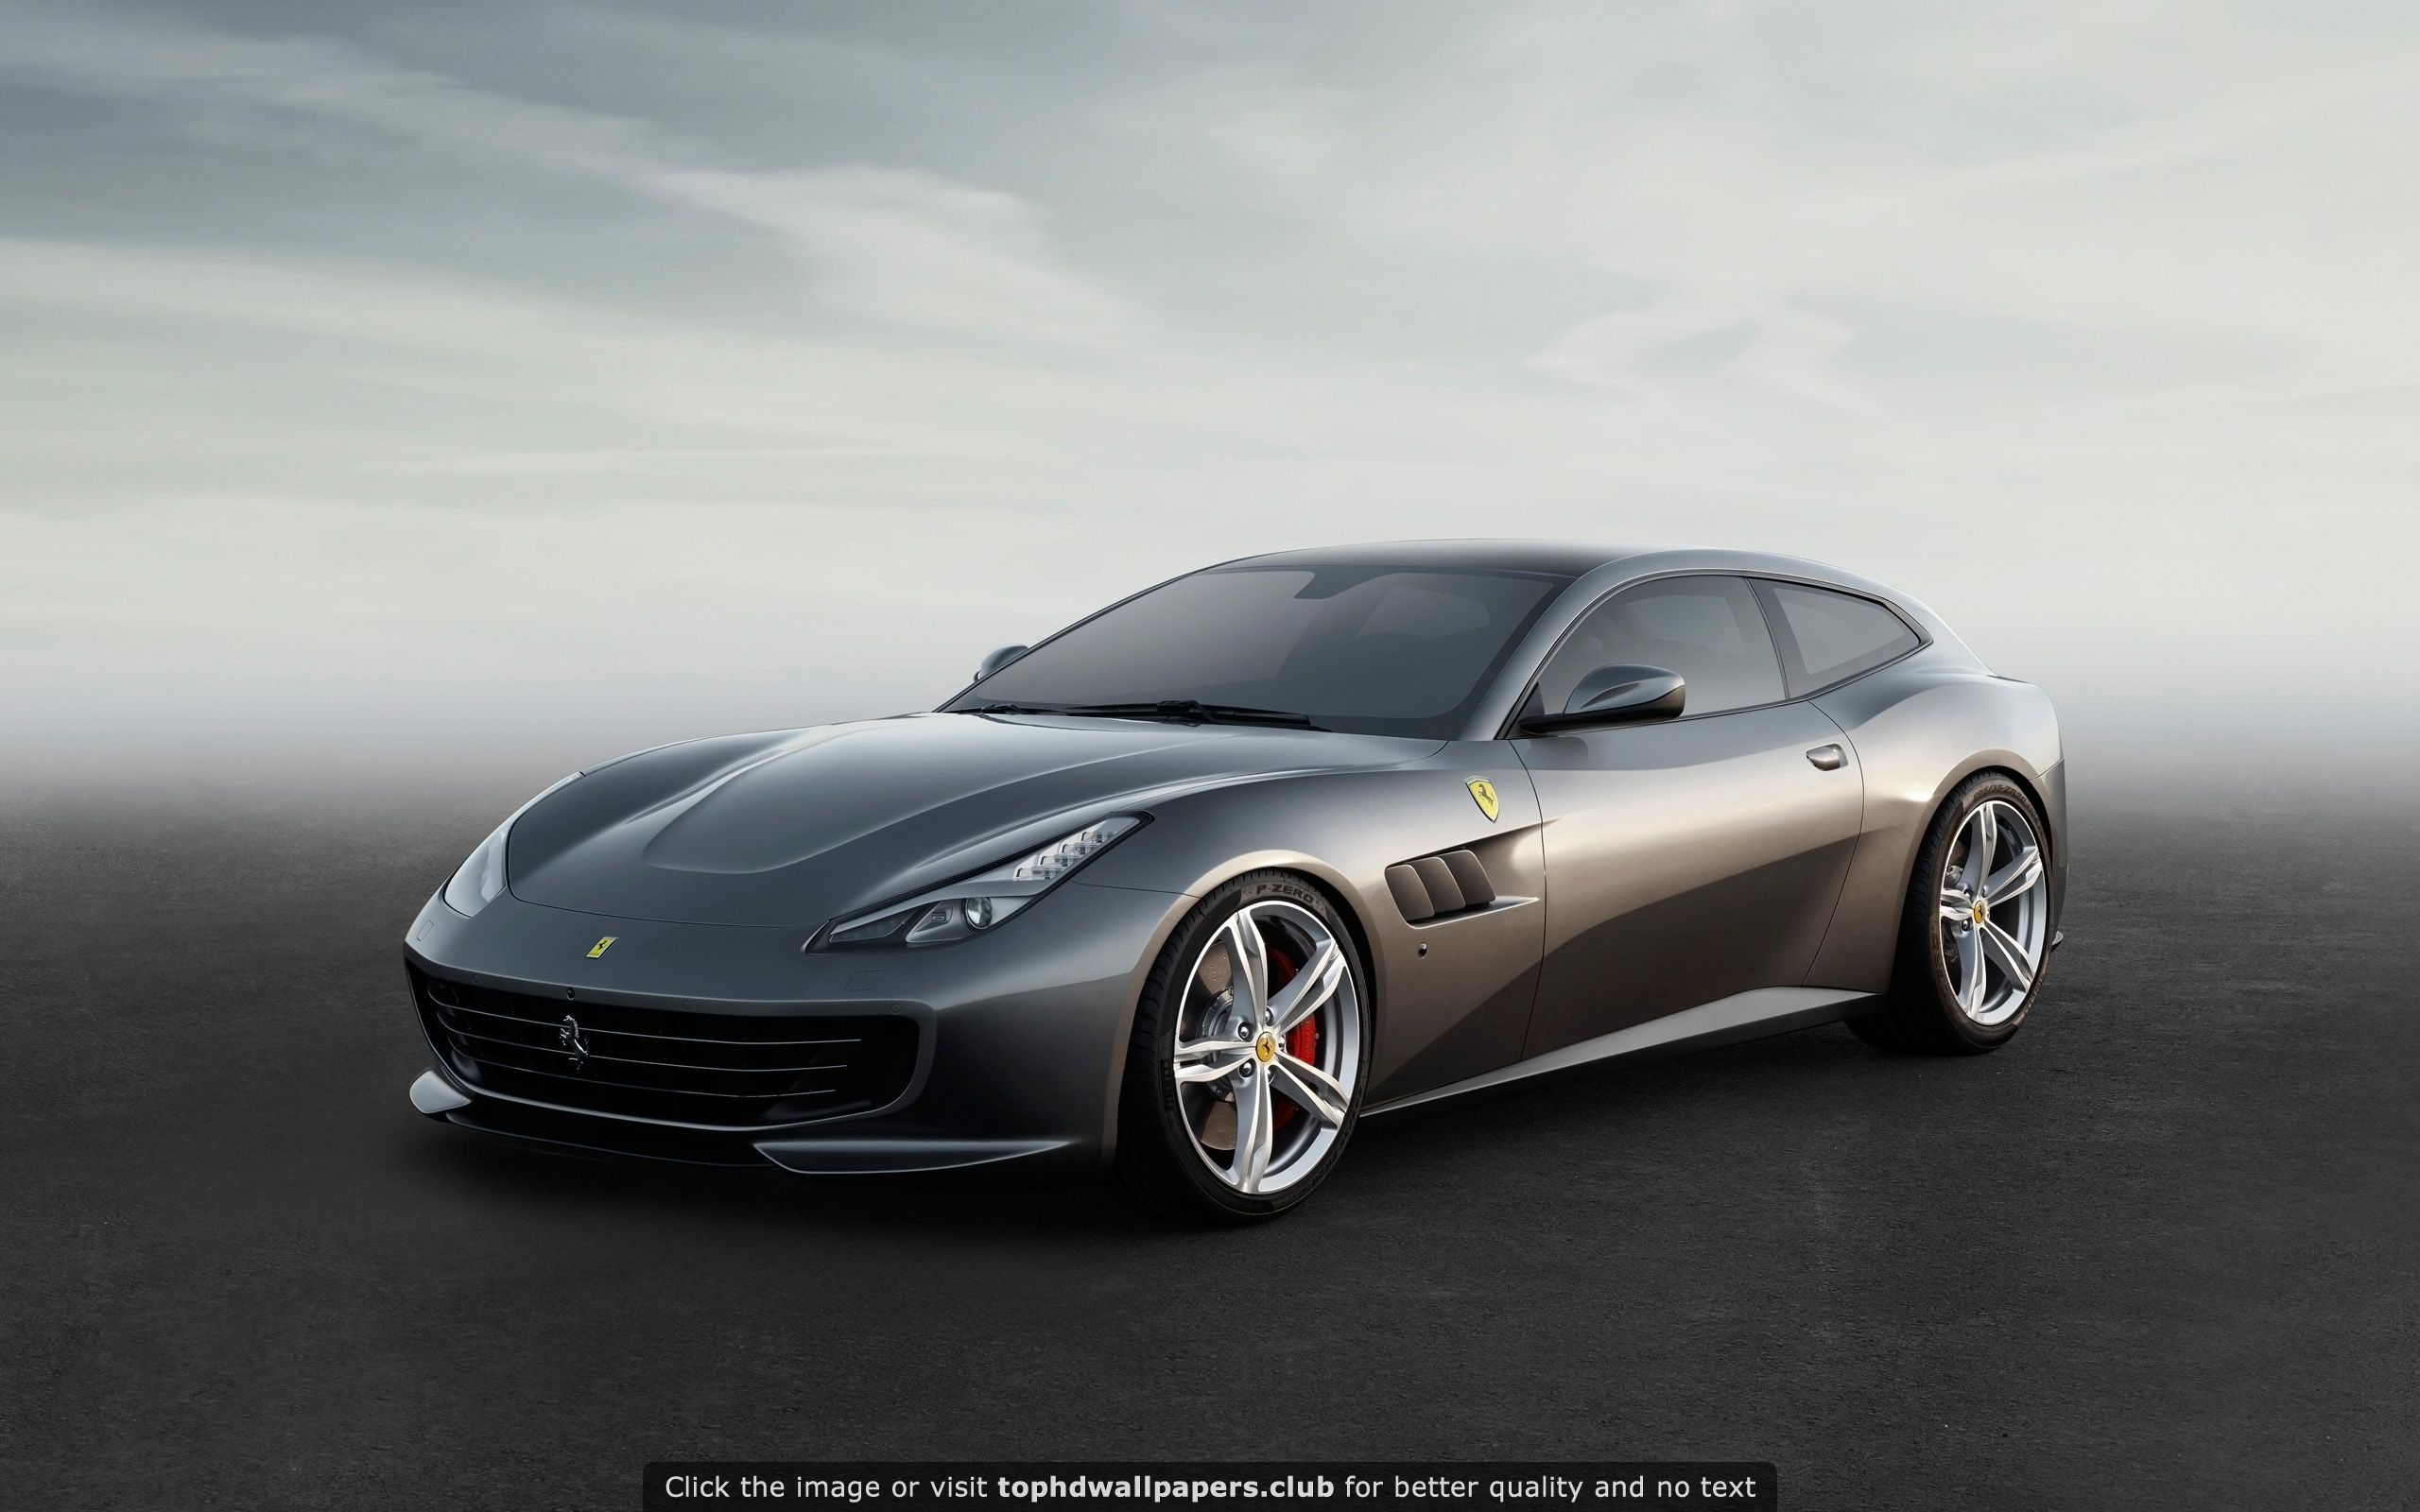 Ferrari Gtc4lusso 4k Or Hd Wallpaper For Your Pc Mac Or Mobile